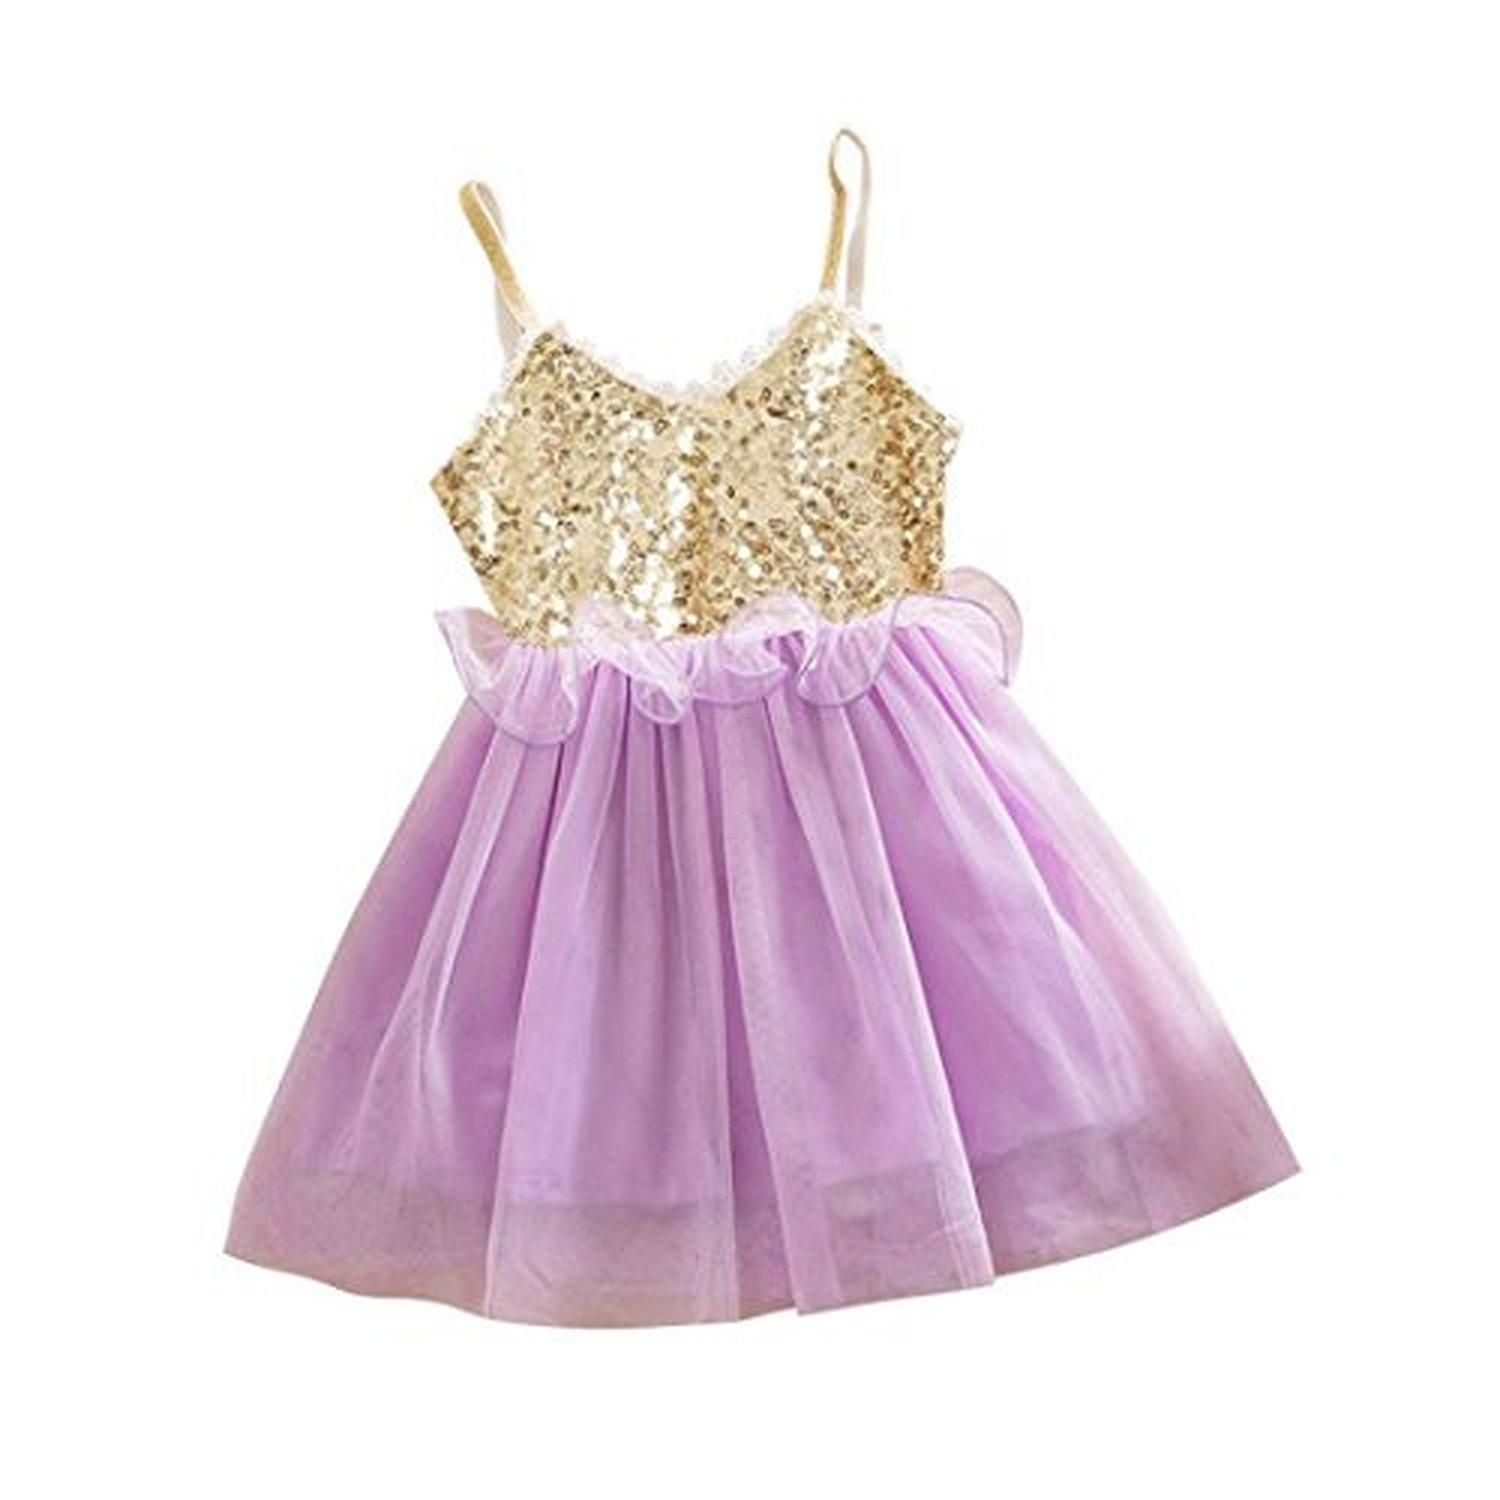 Lilac dress for wedding  Bigface Up Little Girls Princess Sequins Tulle Party Wedding Dress